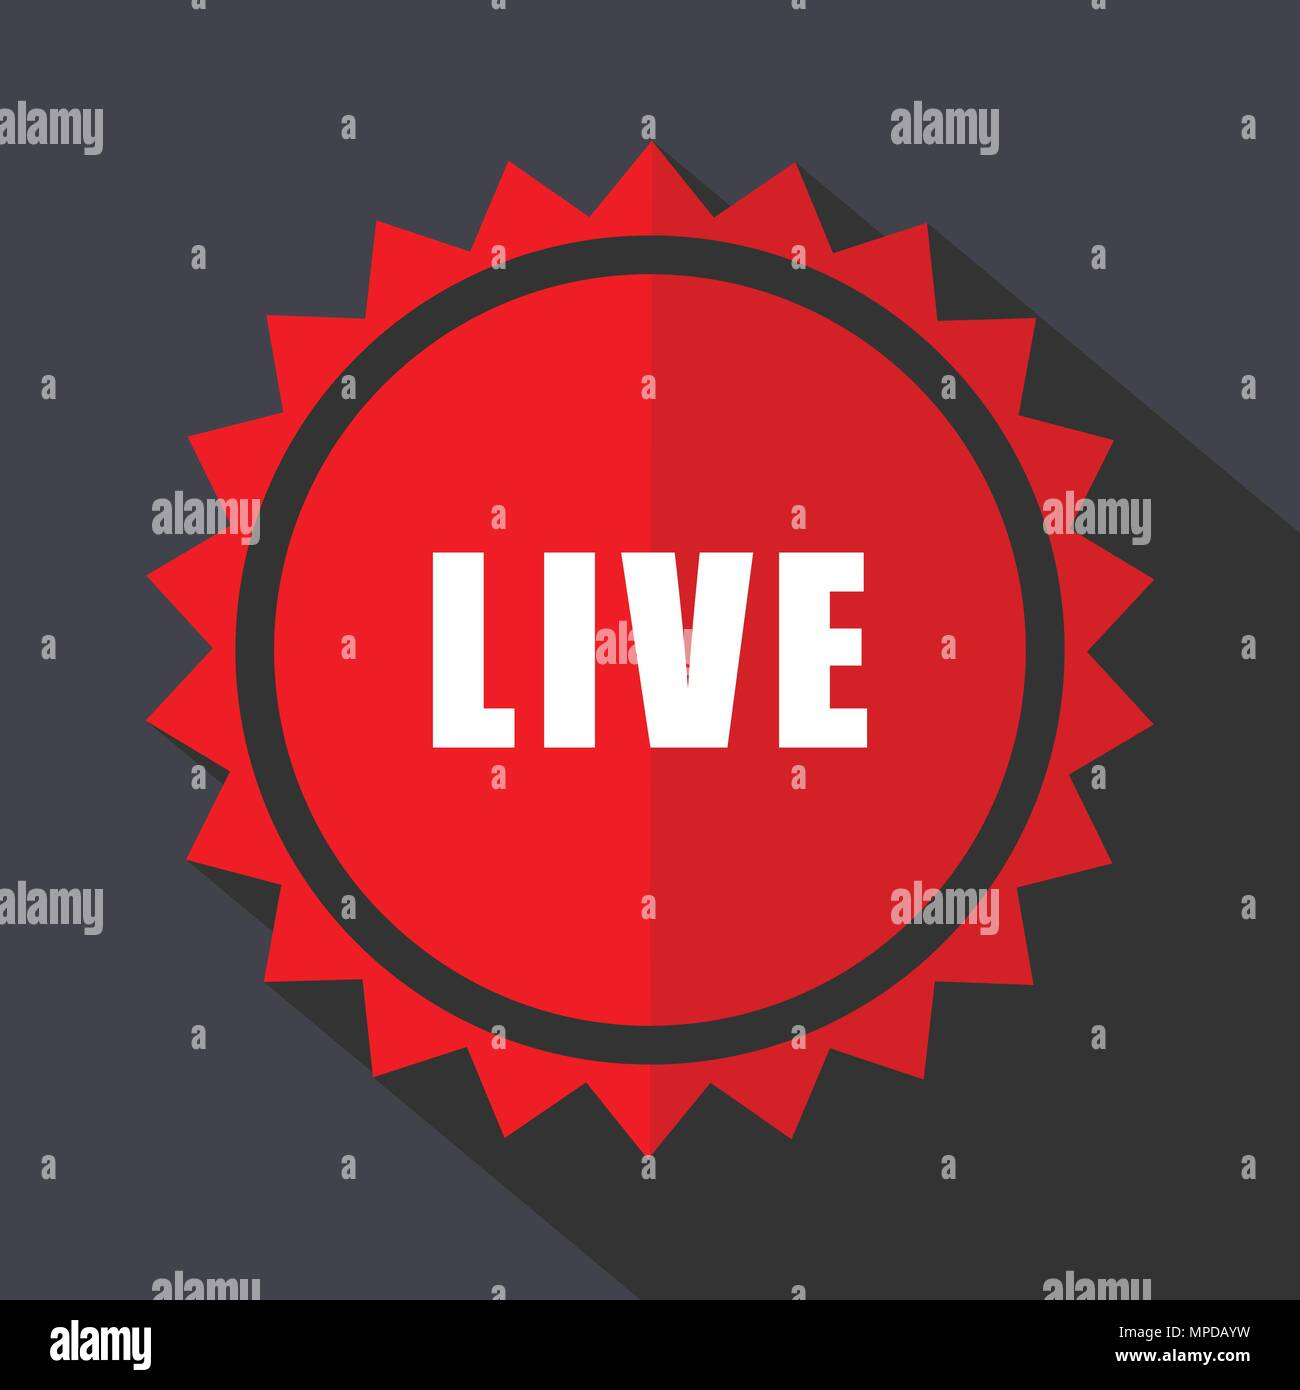 Live red vector sticker flat design icon - Stock Image